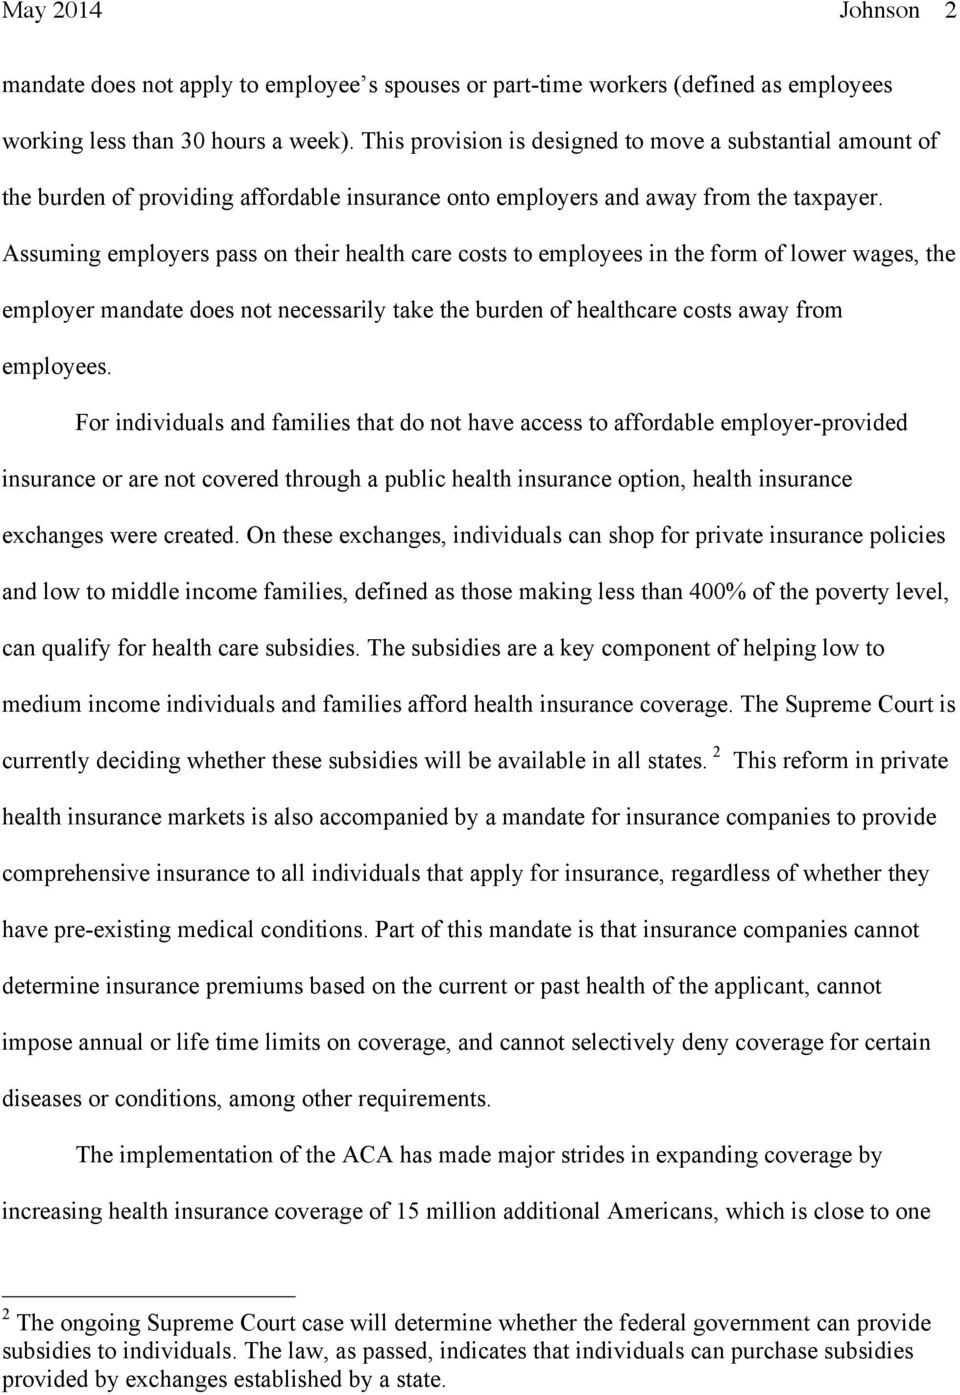 Assuming employers pass on their health care costs to employees in the form of lower wages, the employer mandate does not necessarily take the burden of healthcare costs away from employees.